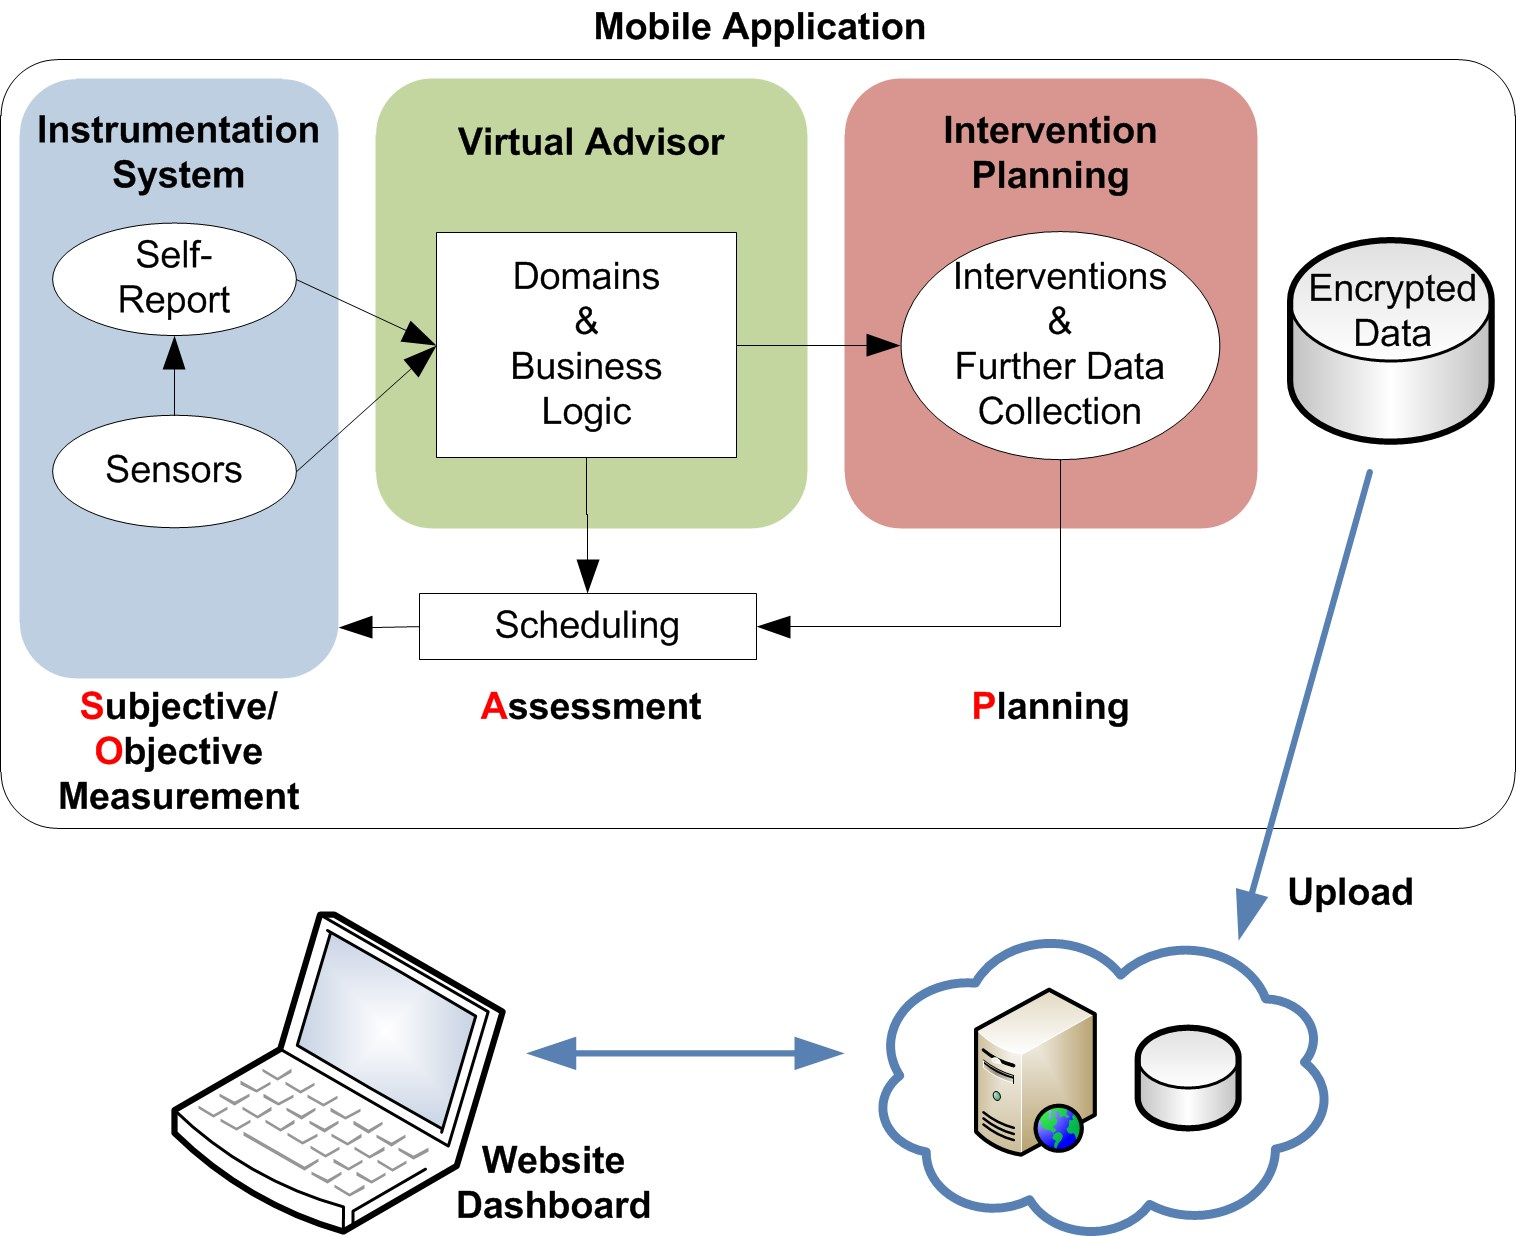 Jmu A Platform To Build Mobile Health Apps The Personal Logic Diagram Instrumentation Figure 1 Intervention Toolkit Model Utilizing Subjective Objective Assessment And Plan Note Methodology